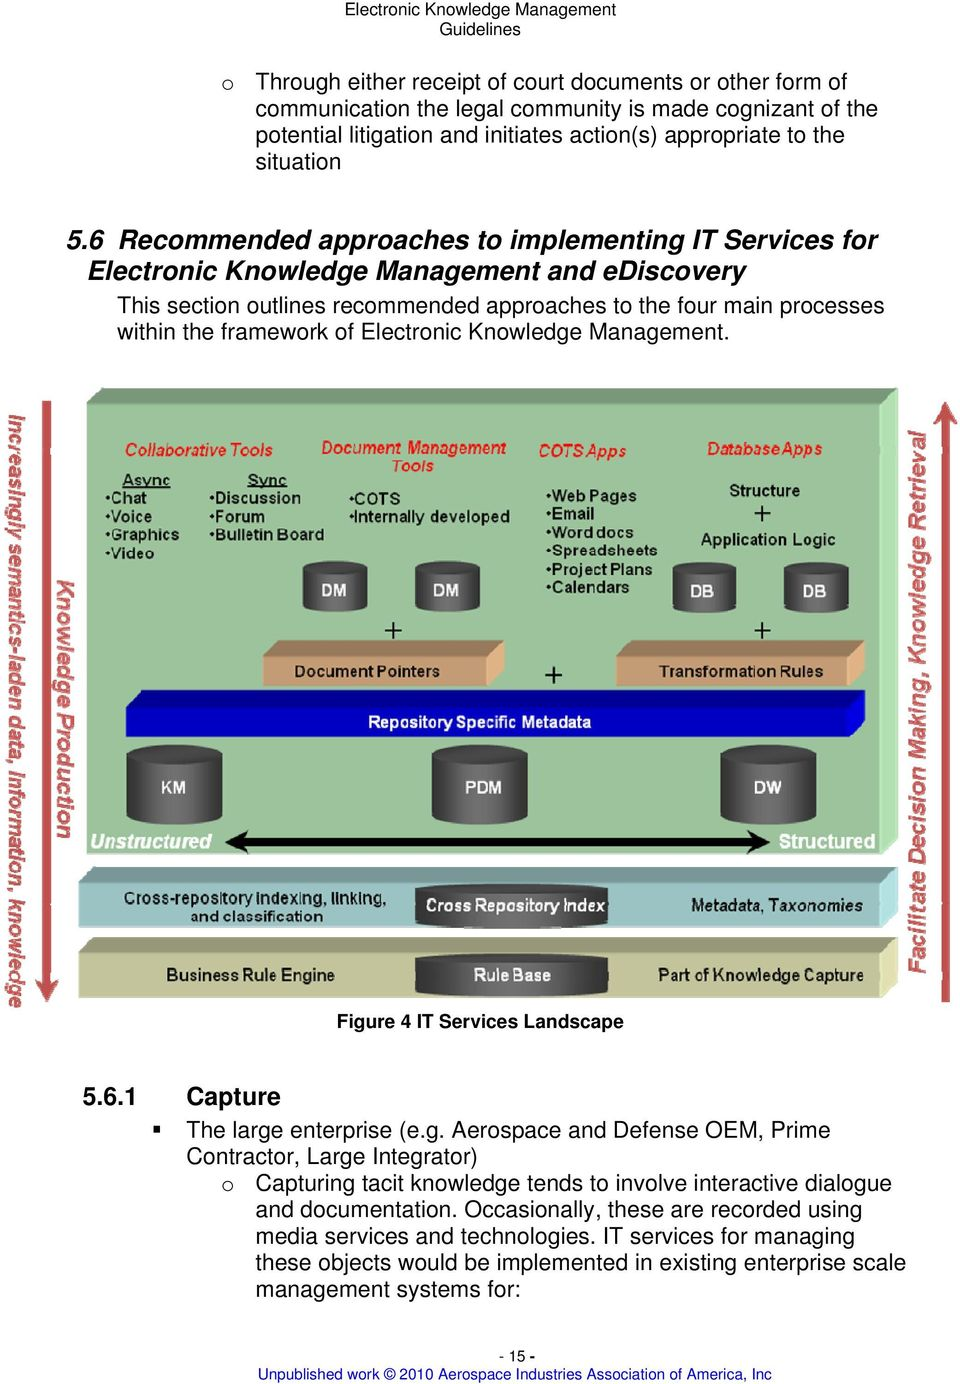 Electronic Management. Figure 4 IT Services Landscape 5.6.1 Capture The large enterprise (e.g. Aerospace and Defense OEM, Prime Contractor, Large Integrator) o Capturing tacit knowledge tends to involve interactive dialogue and documentation.